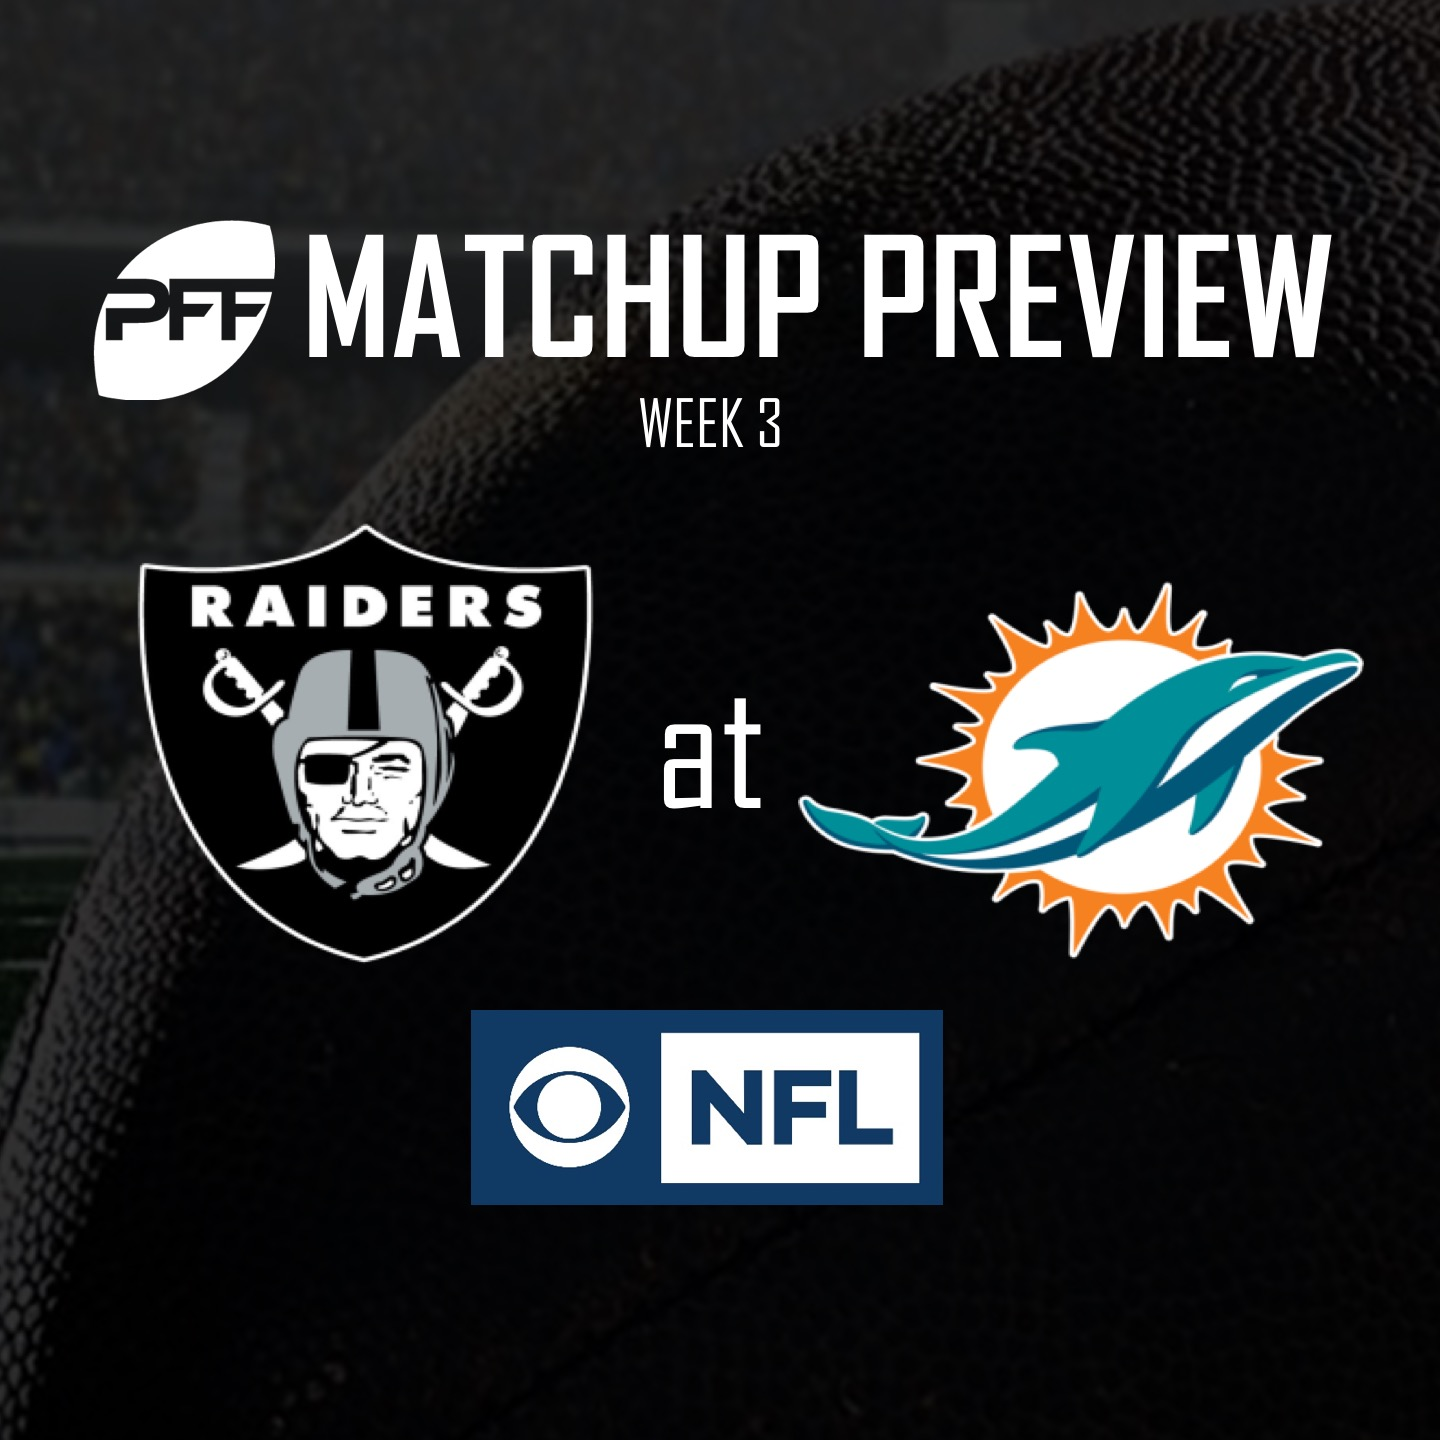 Trick plays help unbeaten Dolphins beat Raiders